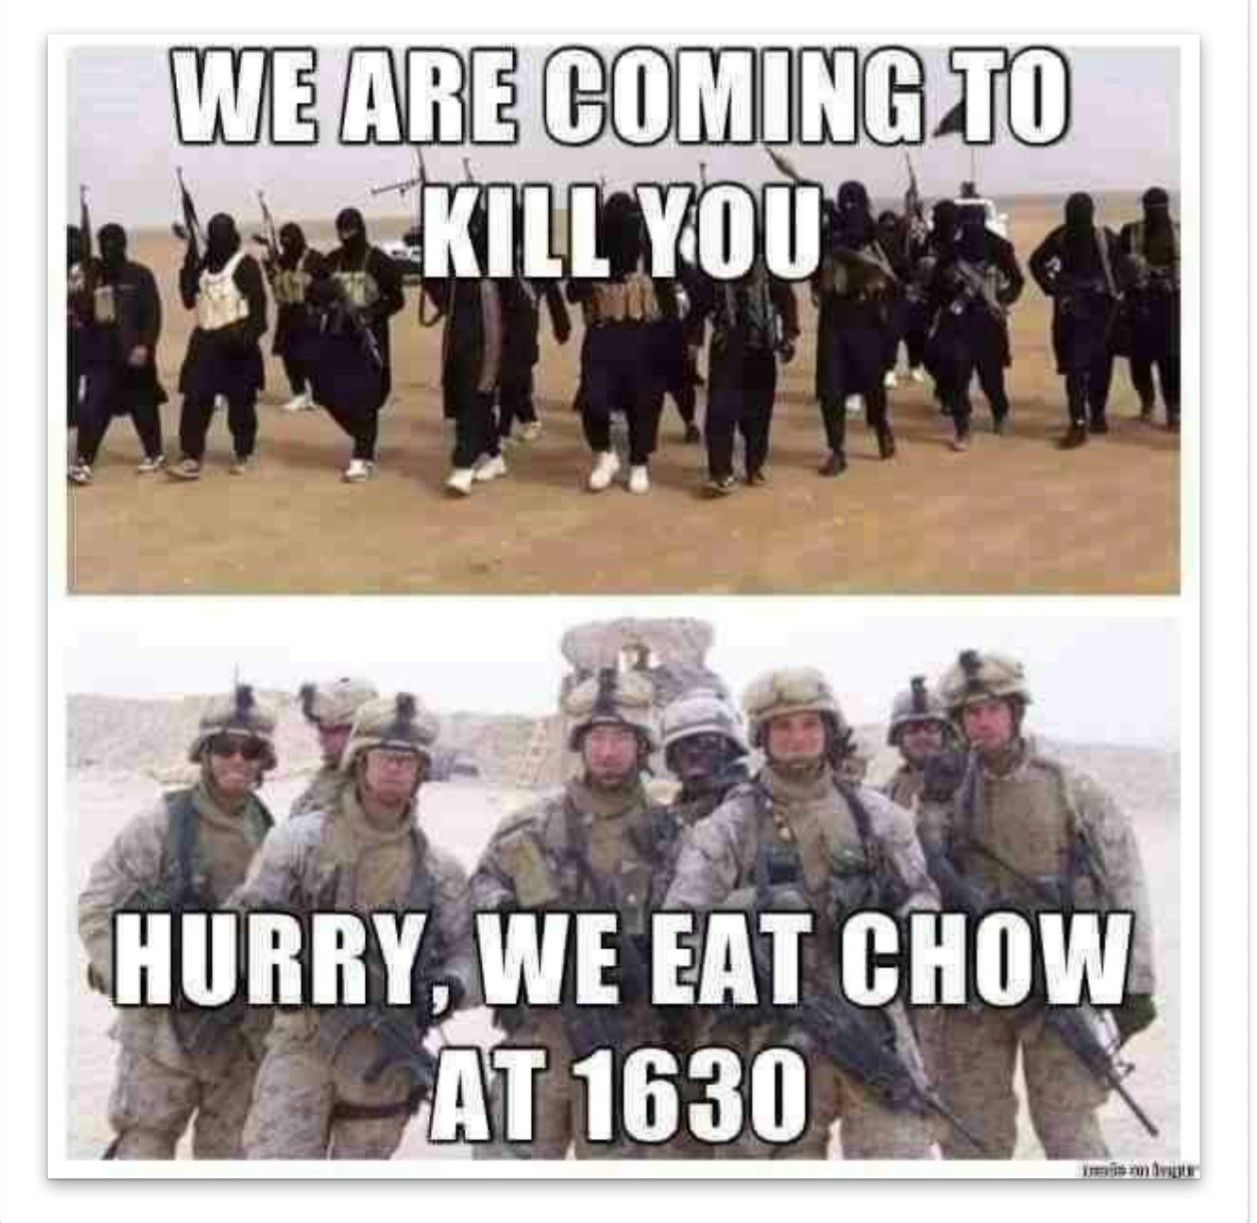 Pin By Tammy Mccoy On Memes Adulting Military Political Military Memes Military Humor Military Jokes